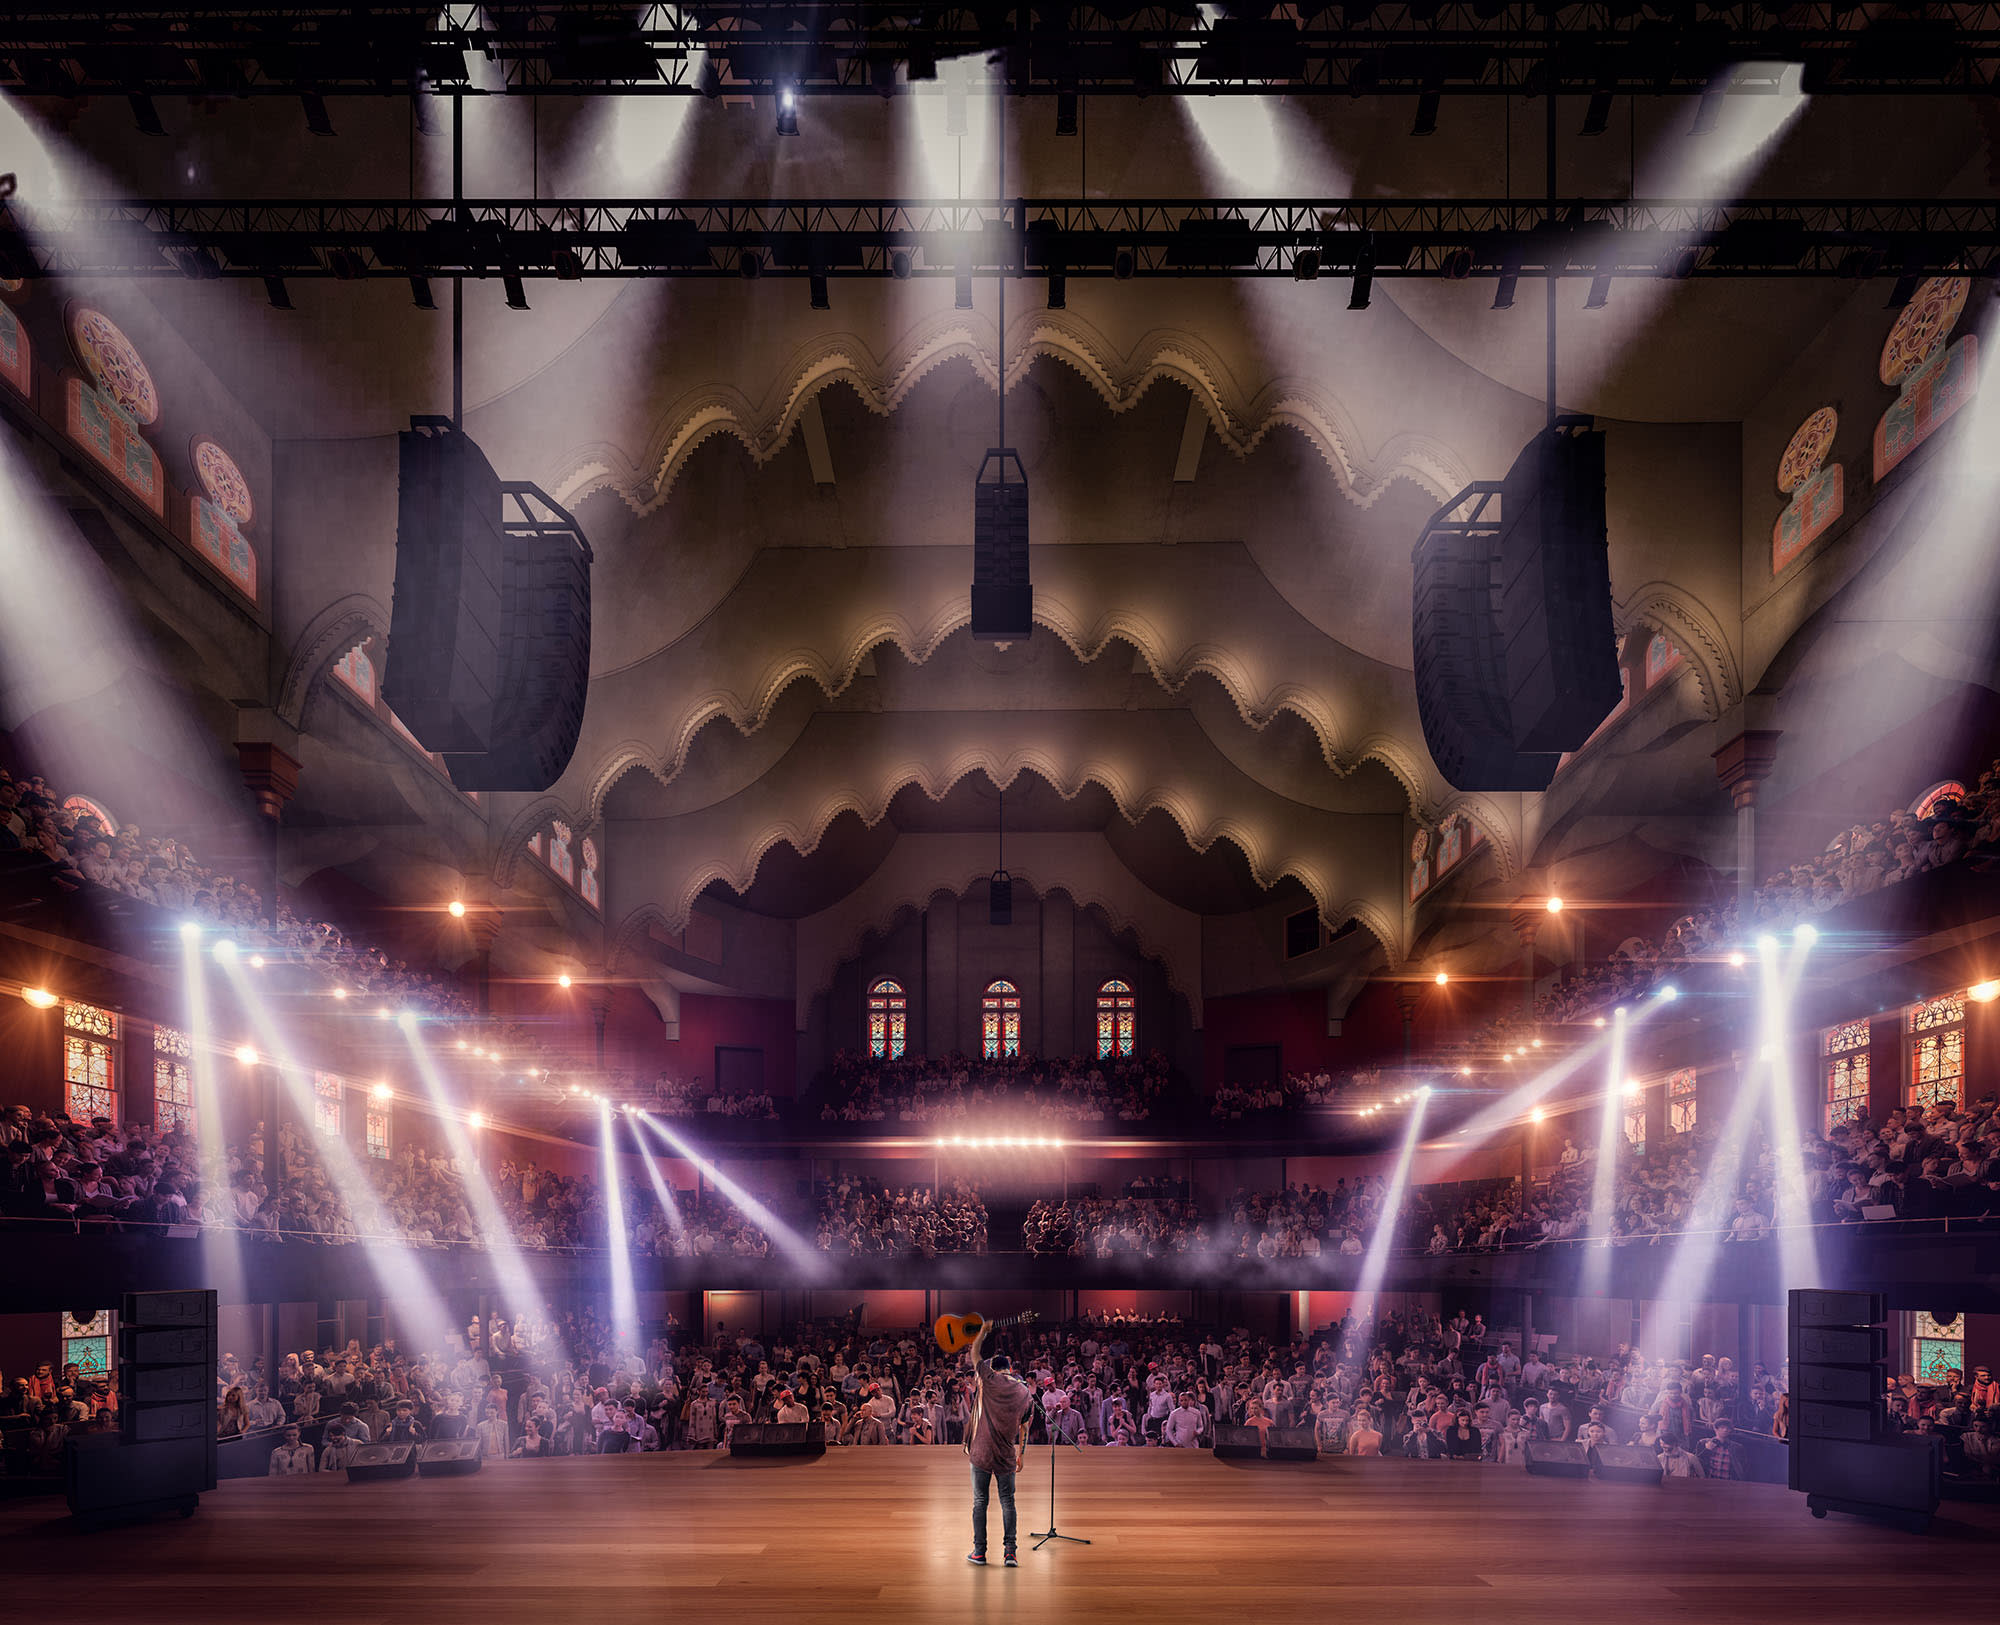 Rendering of stage view in the Allan Slaight Auditorium at Massey Hall